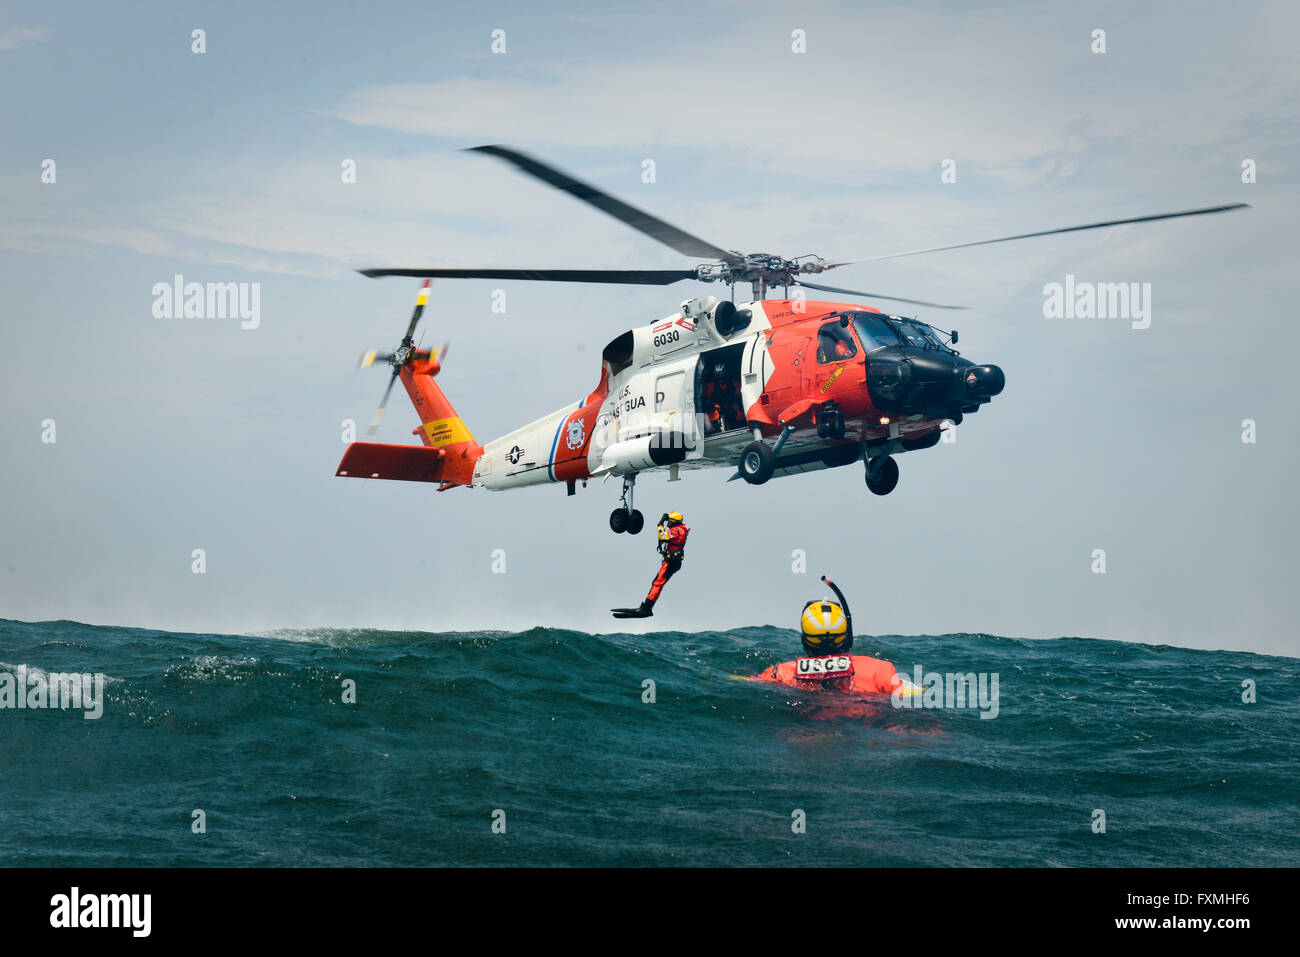 a us coast guard rescue swimmers are deployed from a mh 60 jayhawk helicopter during rescue training in the atlantic ocean june 23 2015 near cape cod